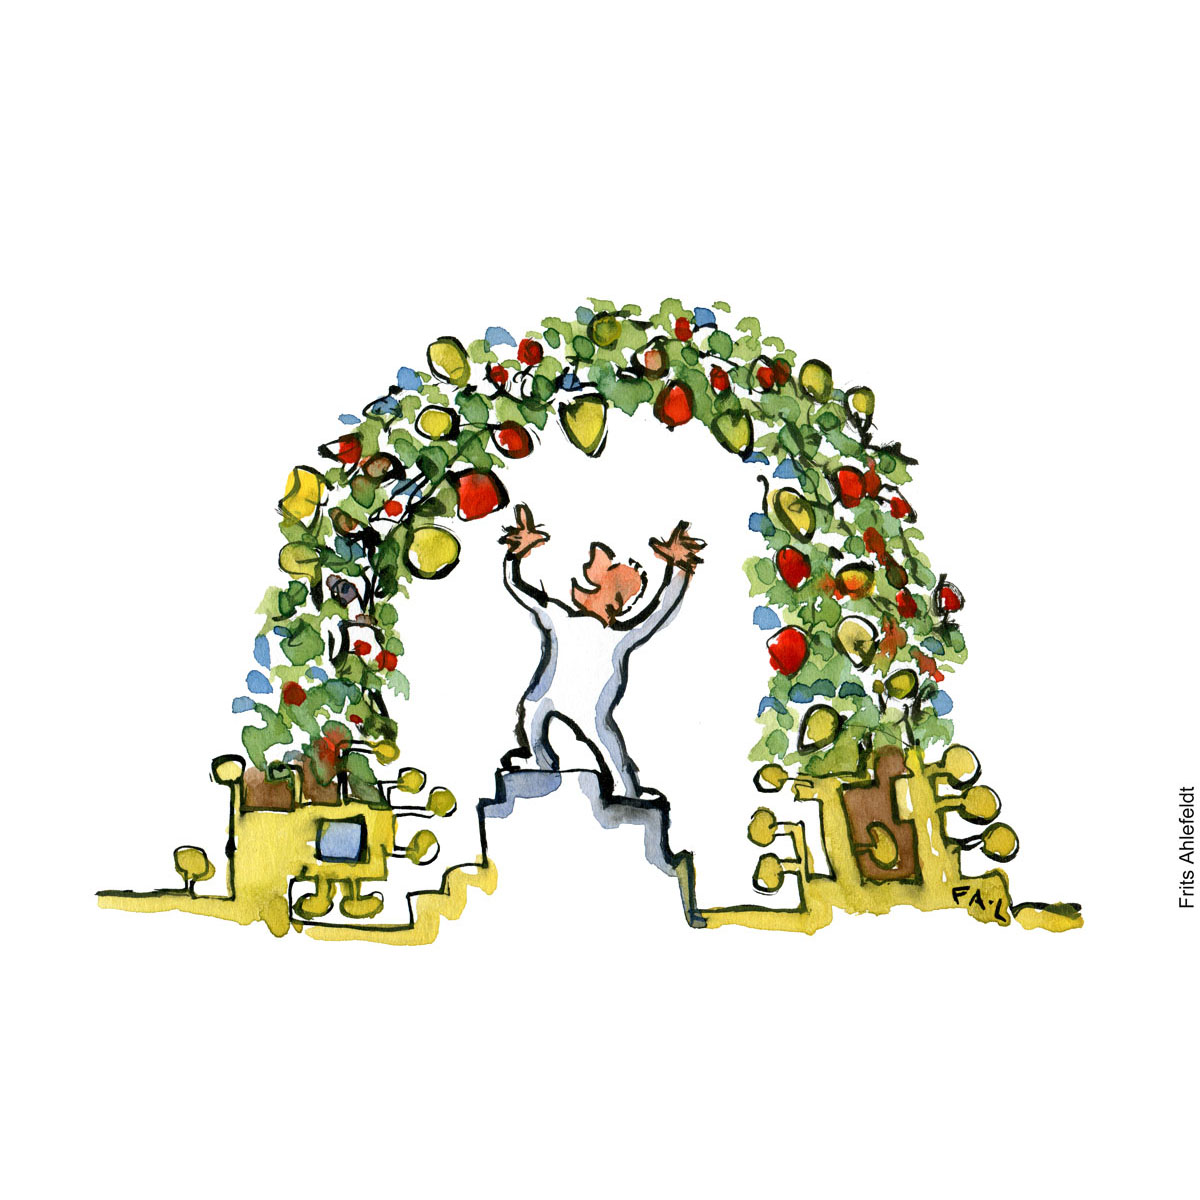 Drawing of a man making high tech food plants grow. illustration by Frits Ahlefeldt